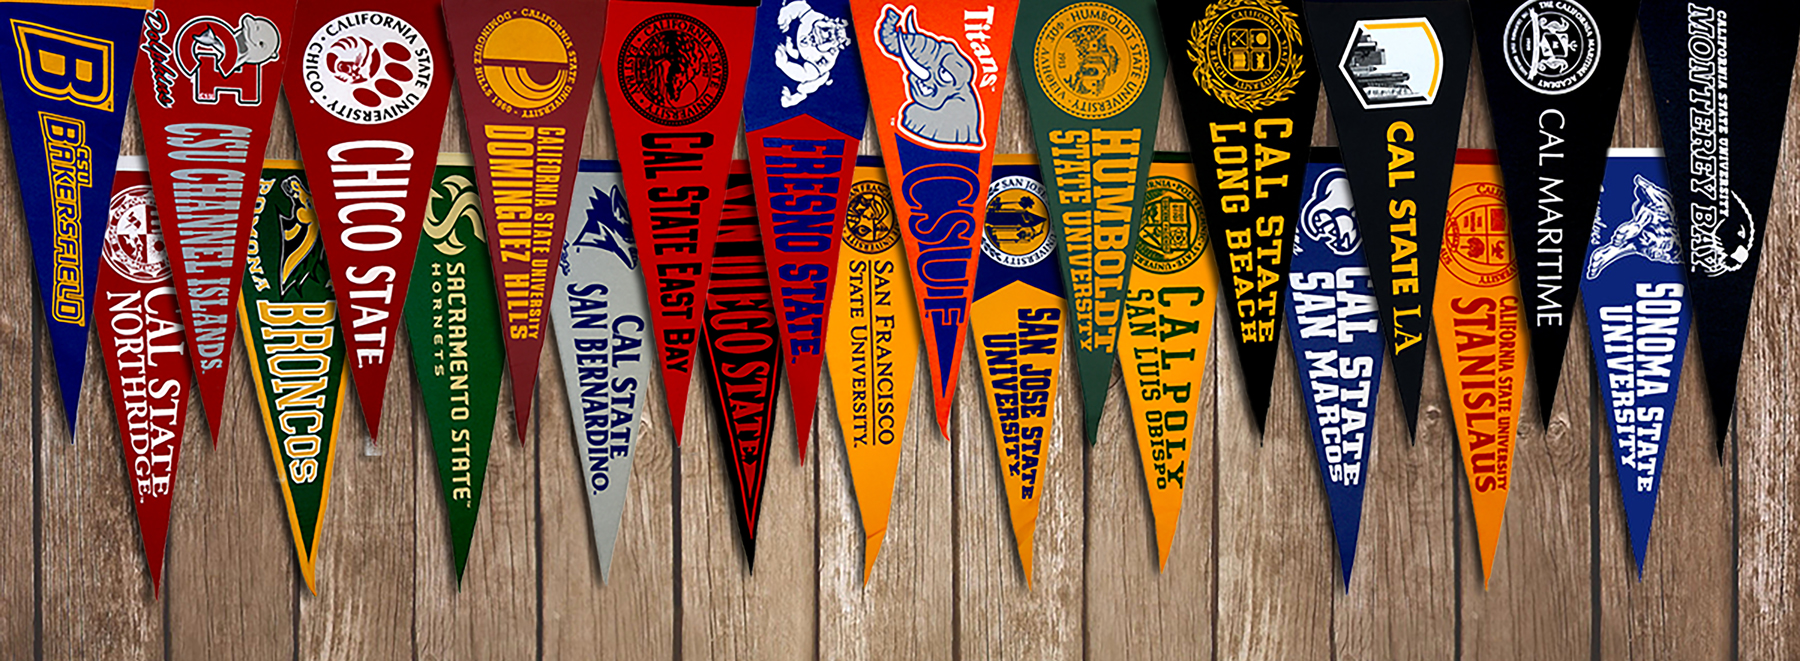 Cal State Universities Pennants